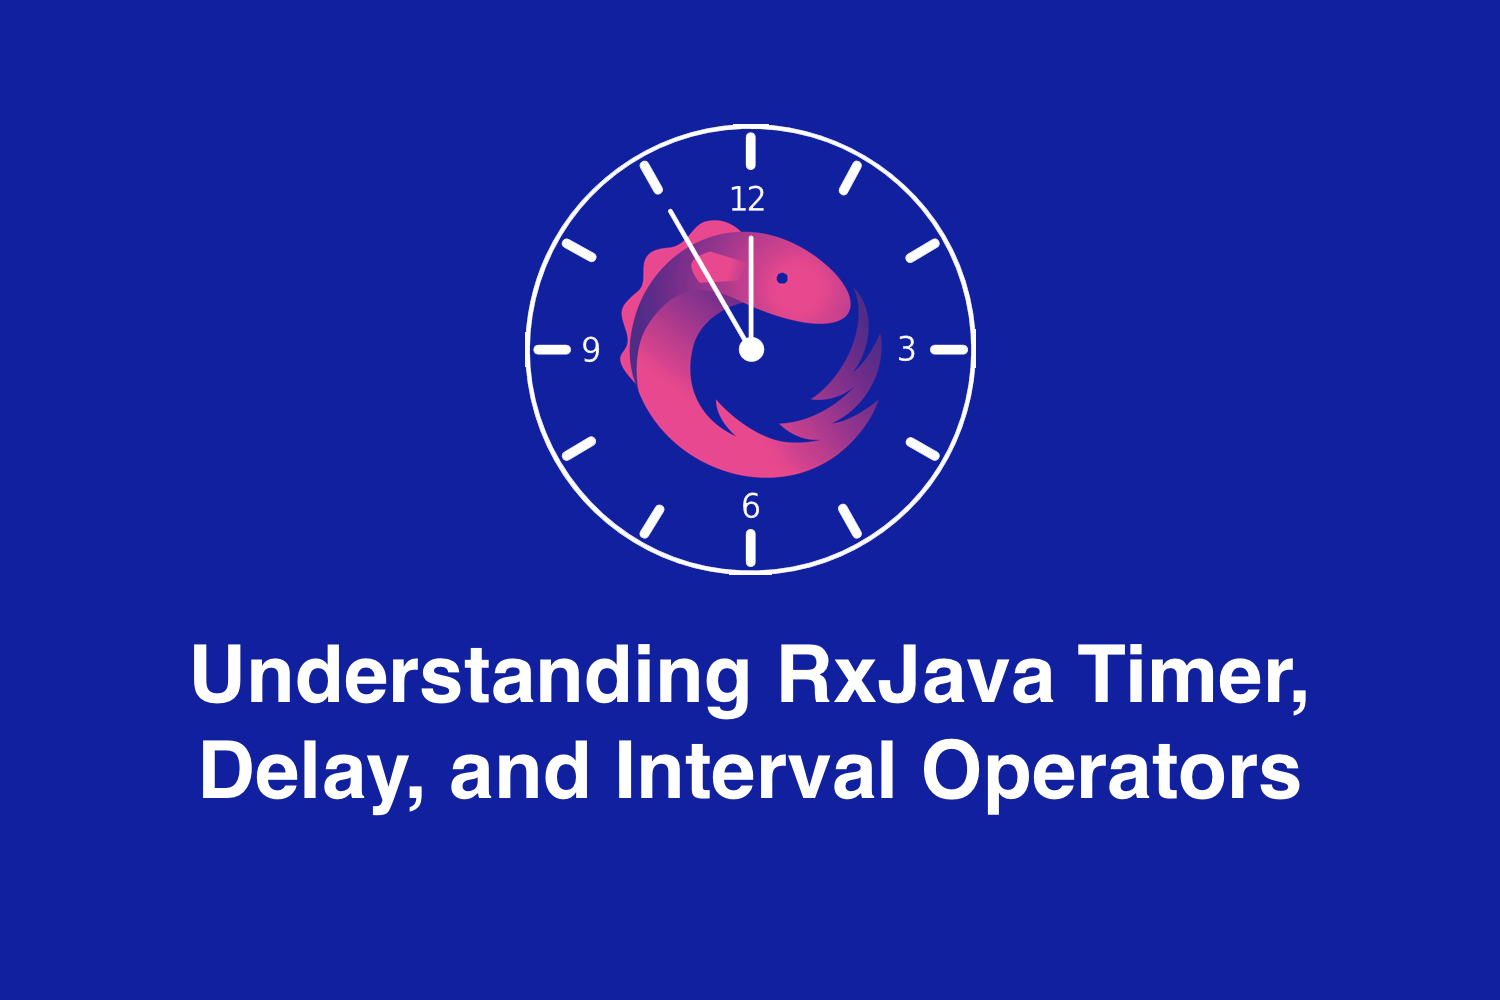 Understanding RxJava Timer, Delay, and Interval Operators